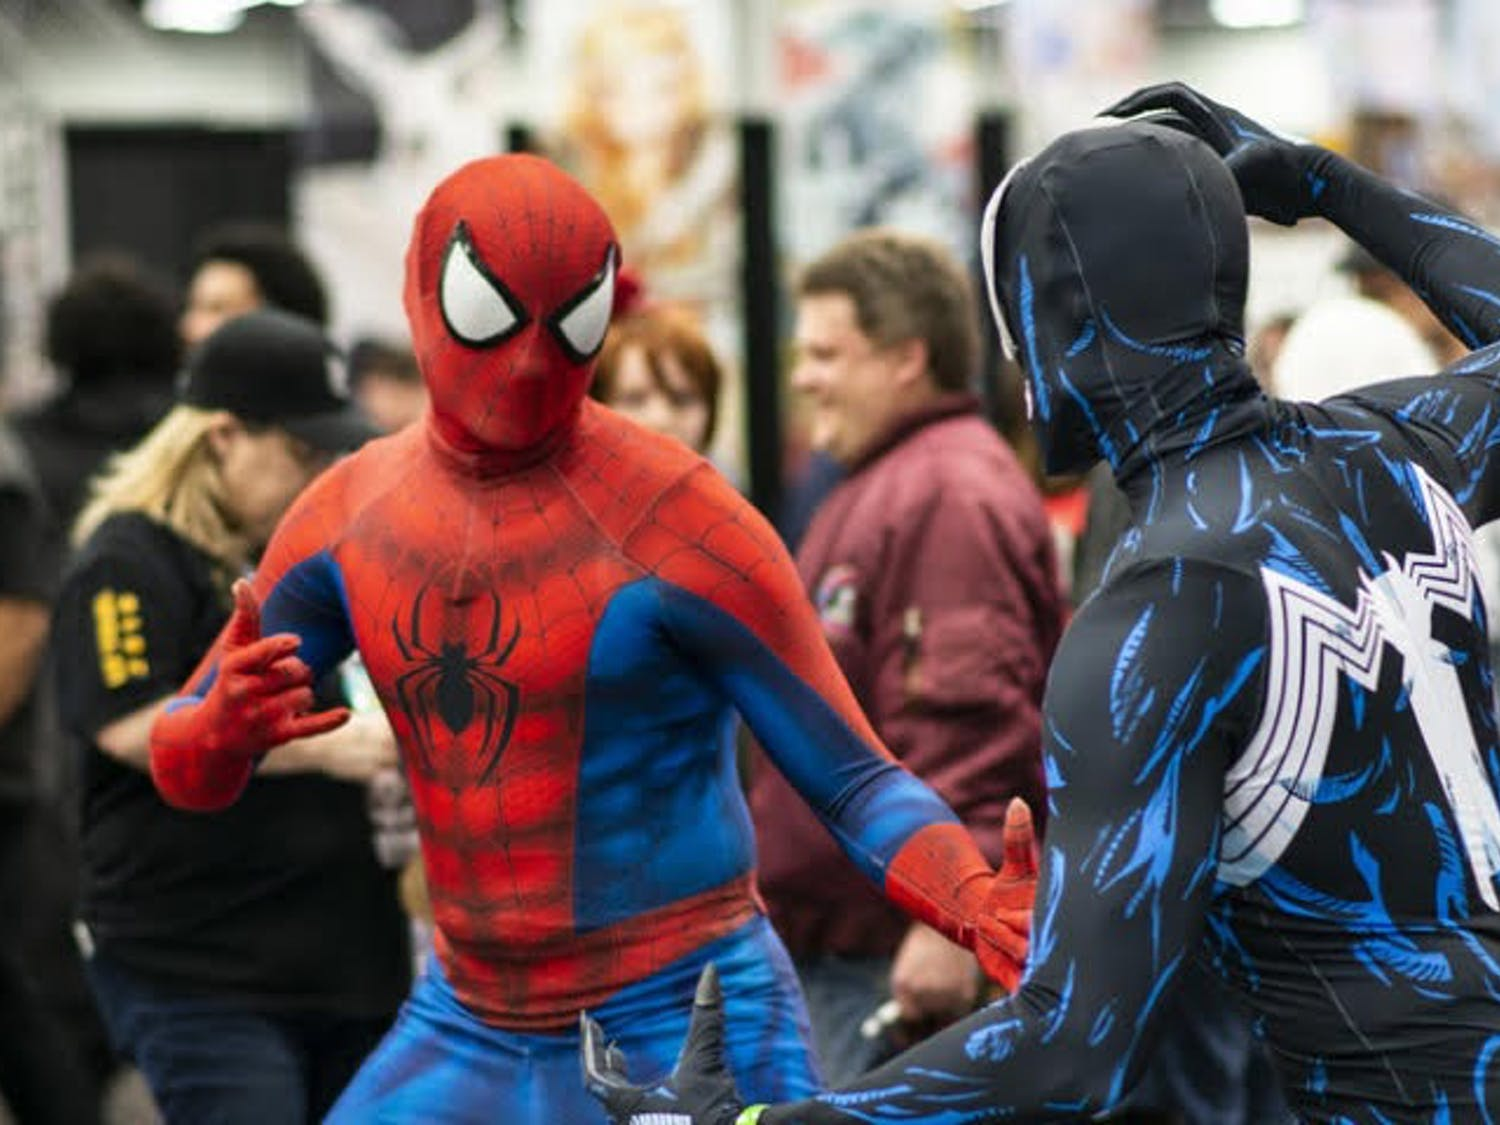 Two convention goers dressed as Marvel's Spider-Man and Venom do battle at Wizard World Comic Con.